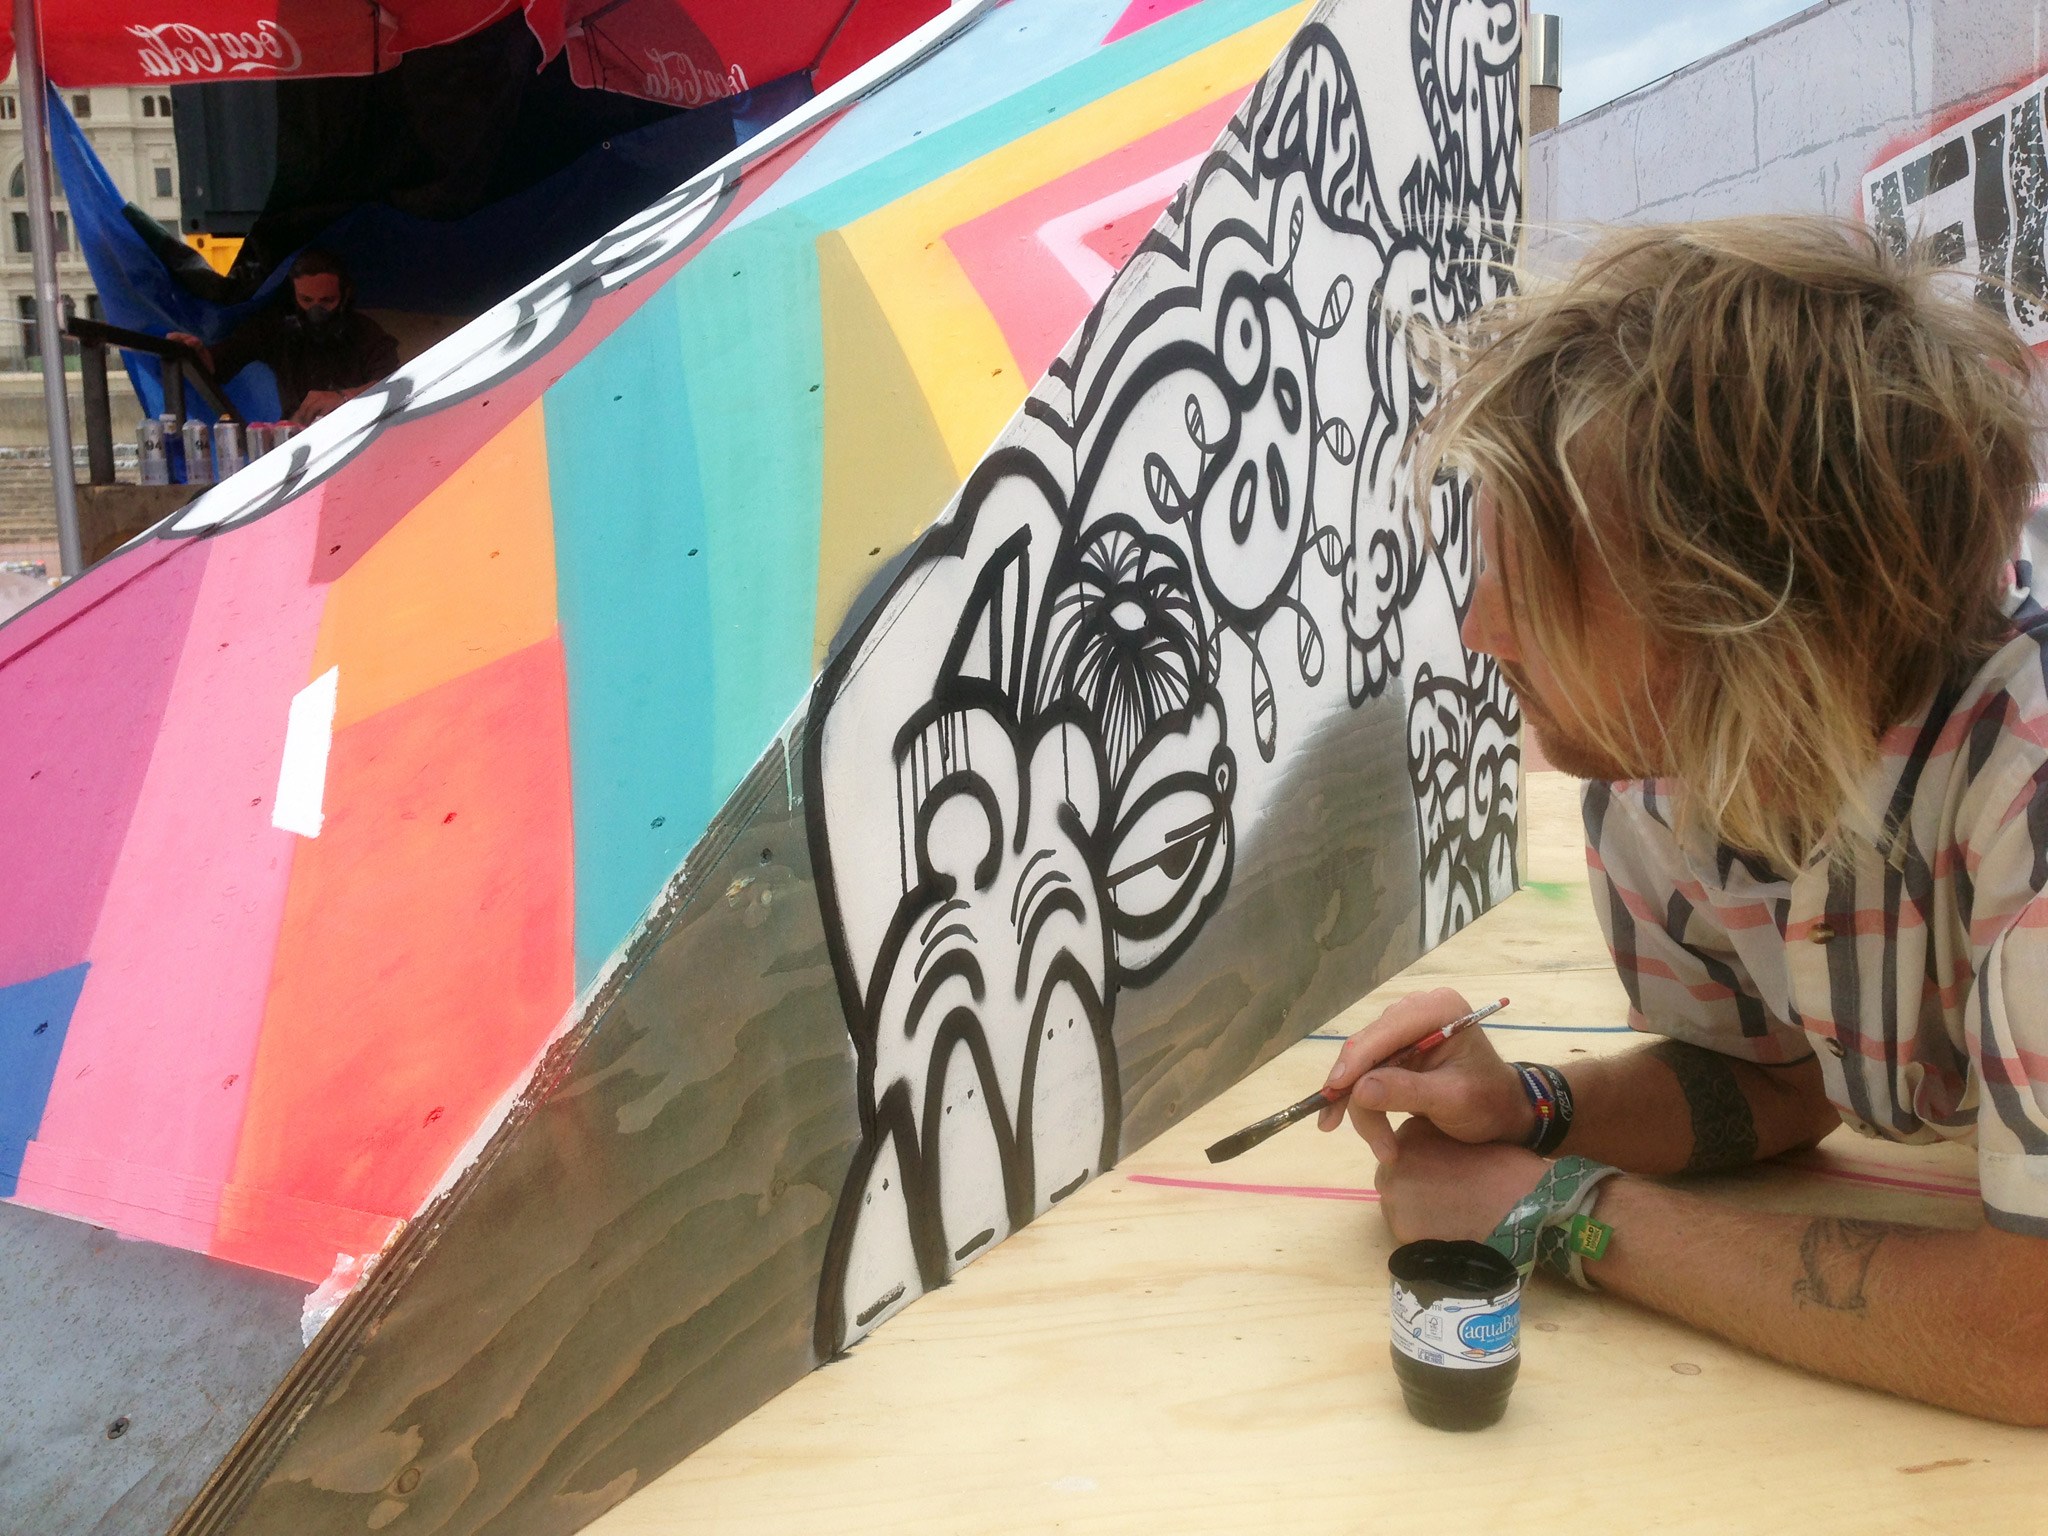 So-Gnar co-founder Pat Milbery puts the finishing touches on his X Games Barcelona art with some brush strokes.